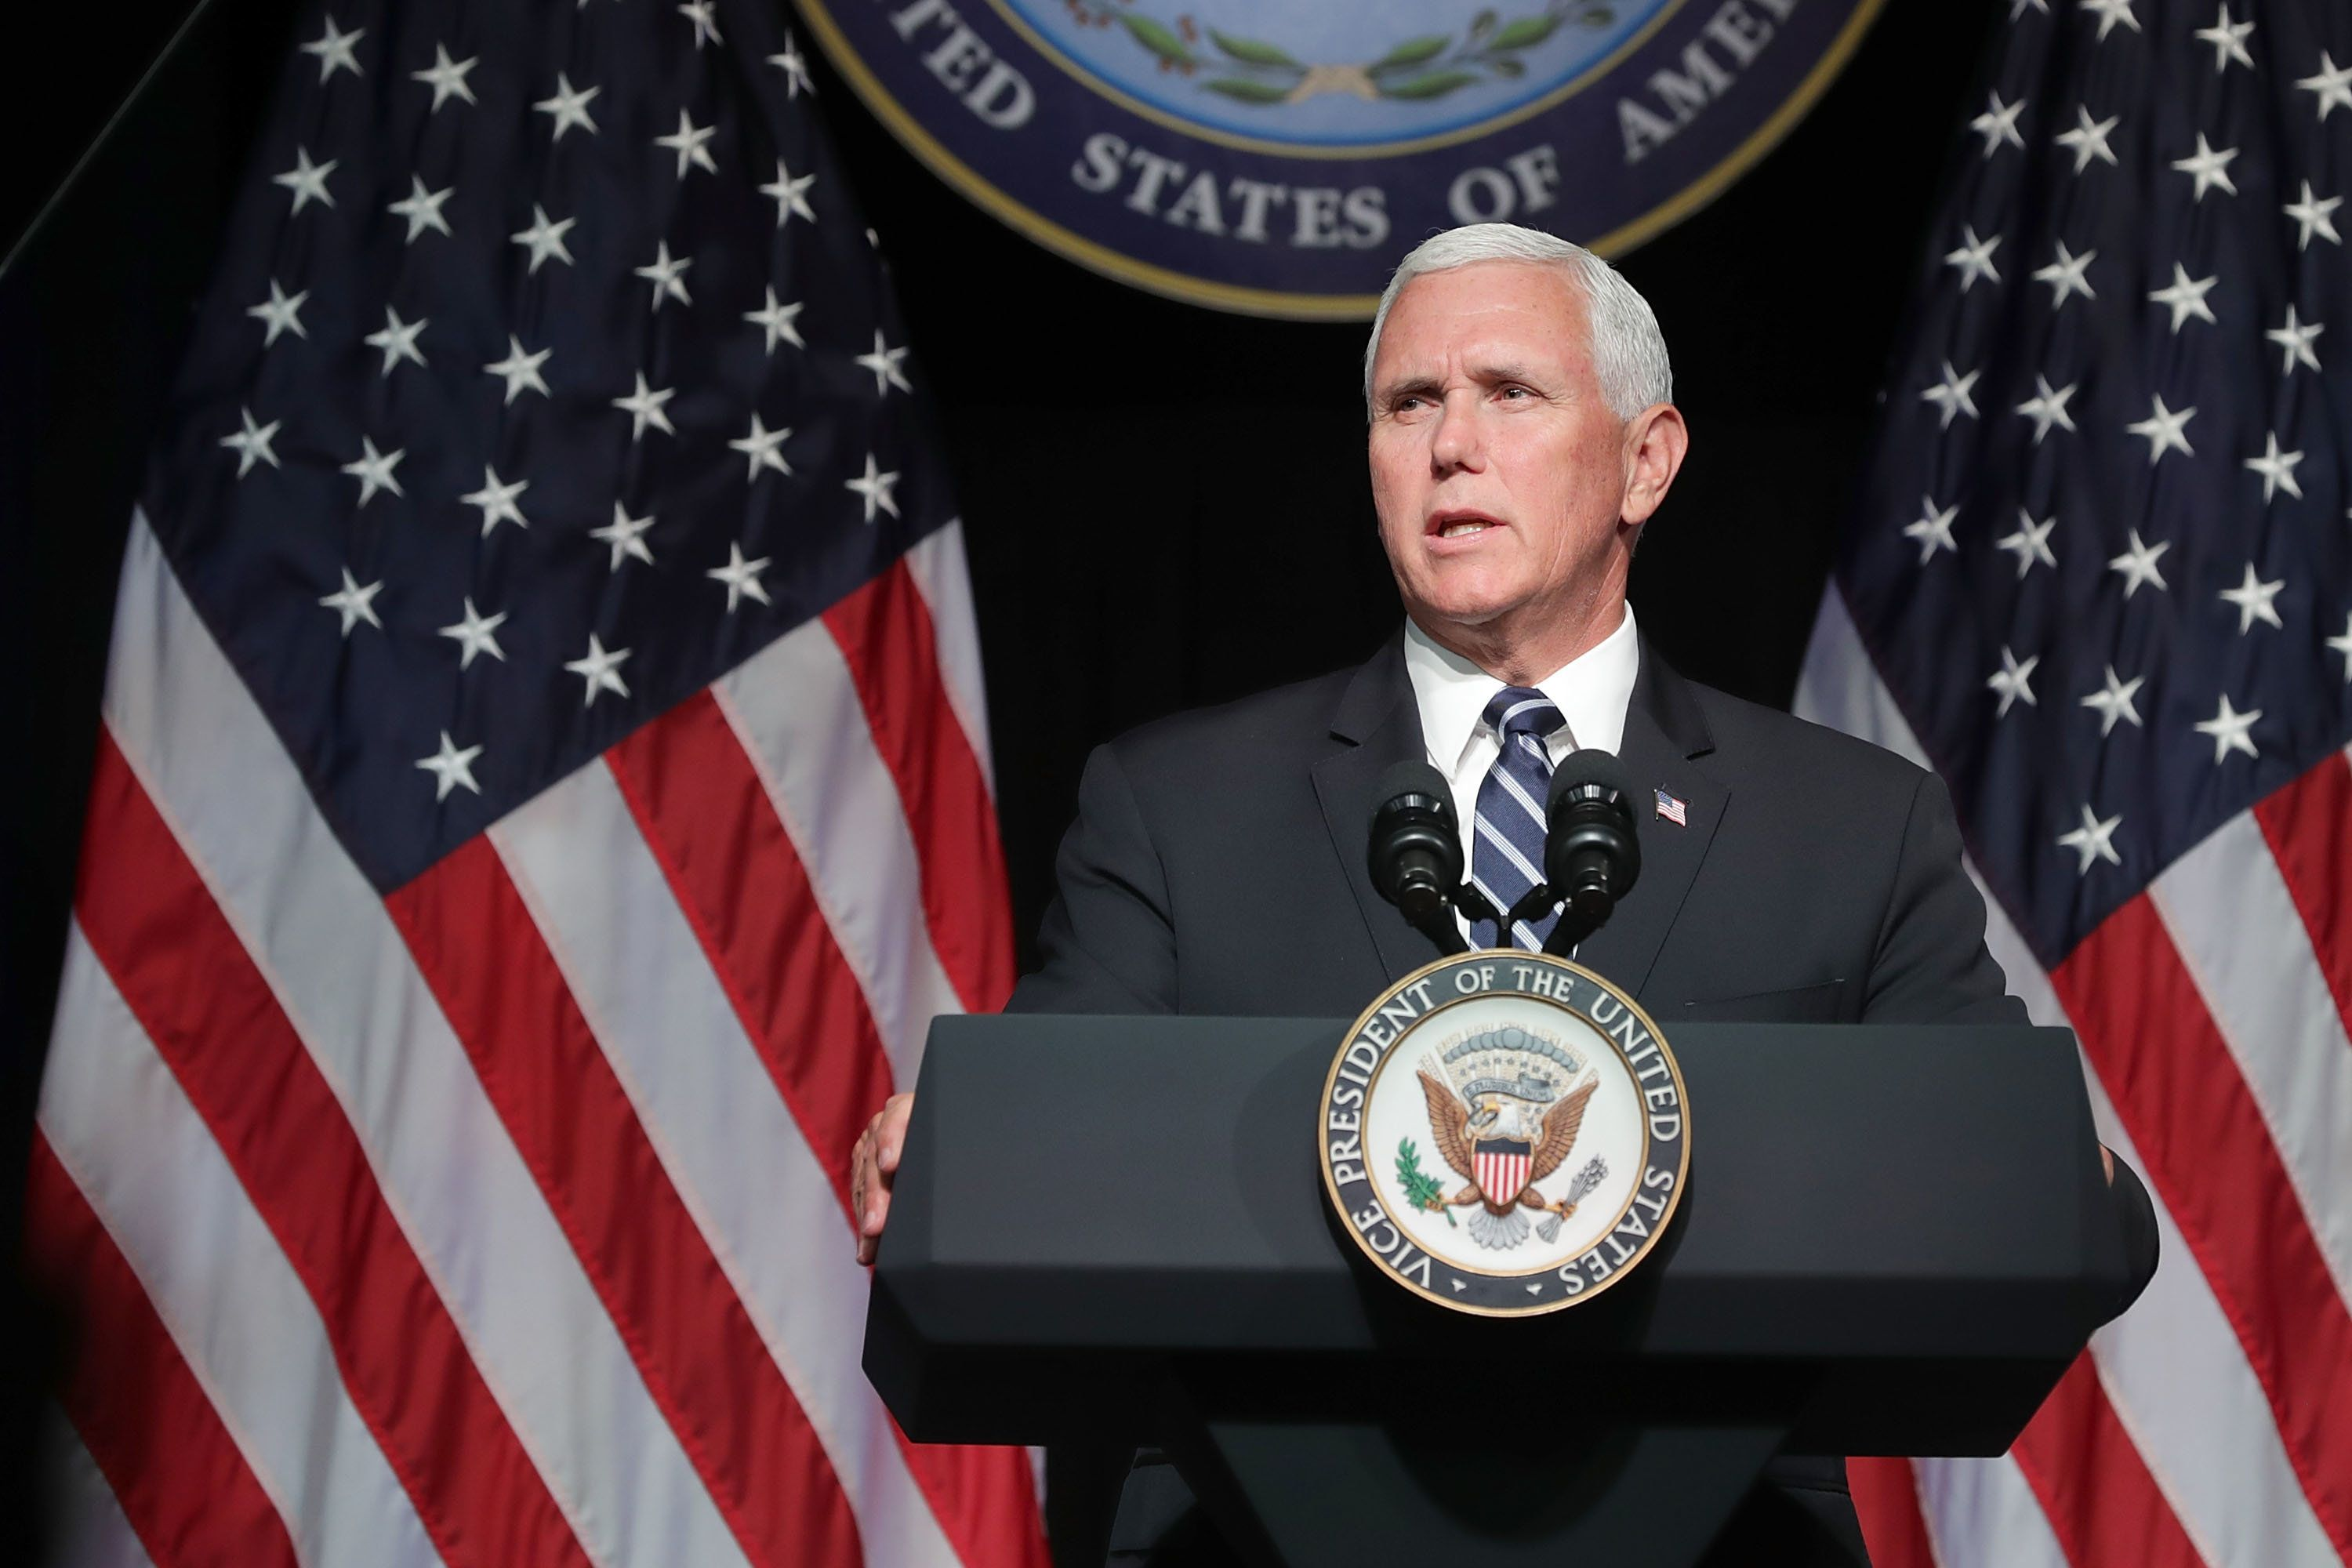 ARLINGTON, VA - AUGUST 09:  U.S. Vice President Mike Pence announces the Trump Administration's plan to create the U.S. Space Force by 2020 during a speech at the Pentagon August 9, 2018 in Arlington, Virginia. Describing space as adversarial and crowded and citing threats from China and Russia, Pence said the new Space Force would be a separate, sixth branch of the military.  (Photo by Chip Somodevilla/Getty Images)